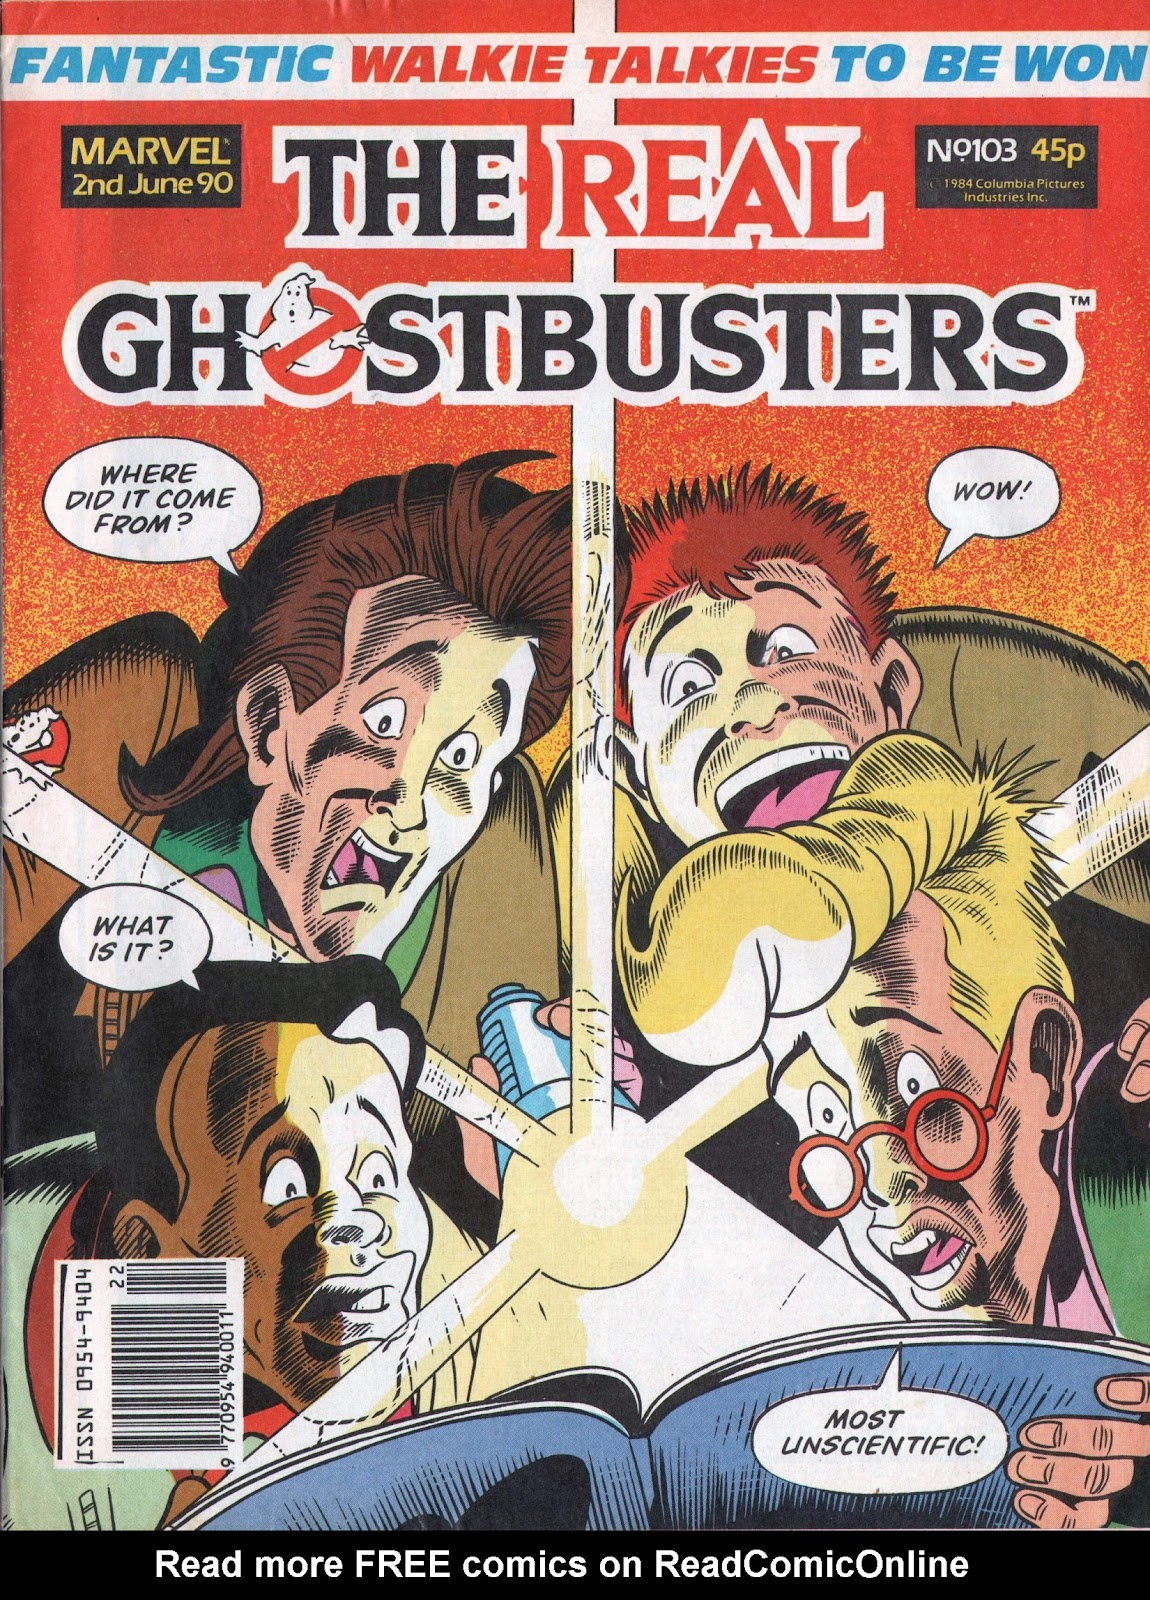 The Real Ghostbusters 103 Page 1